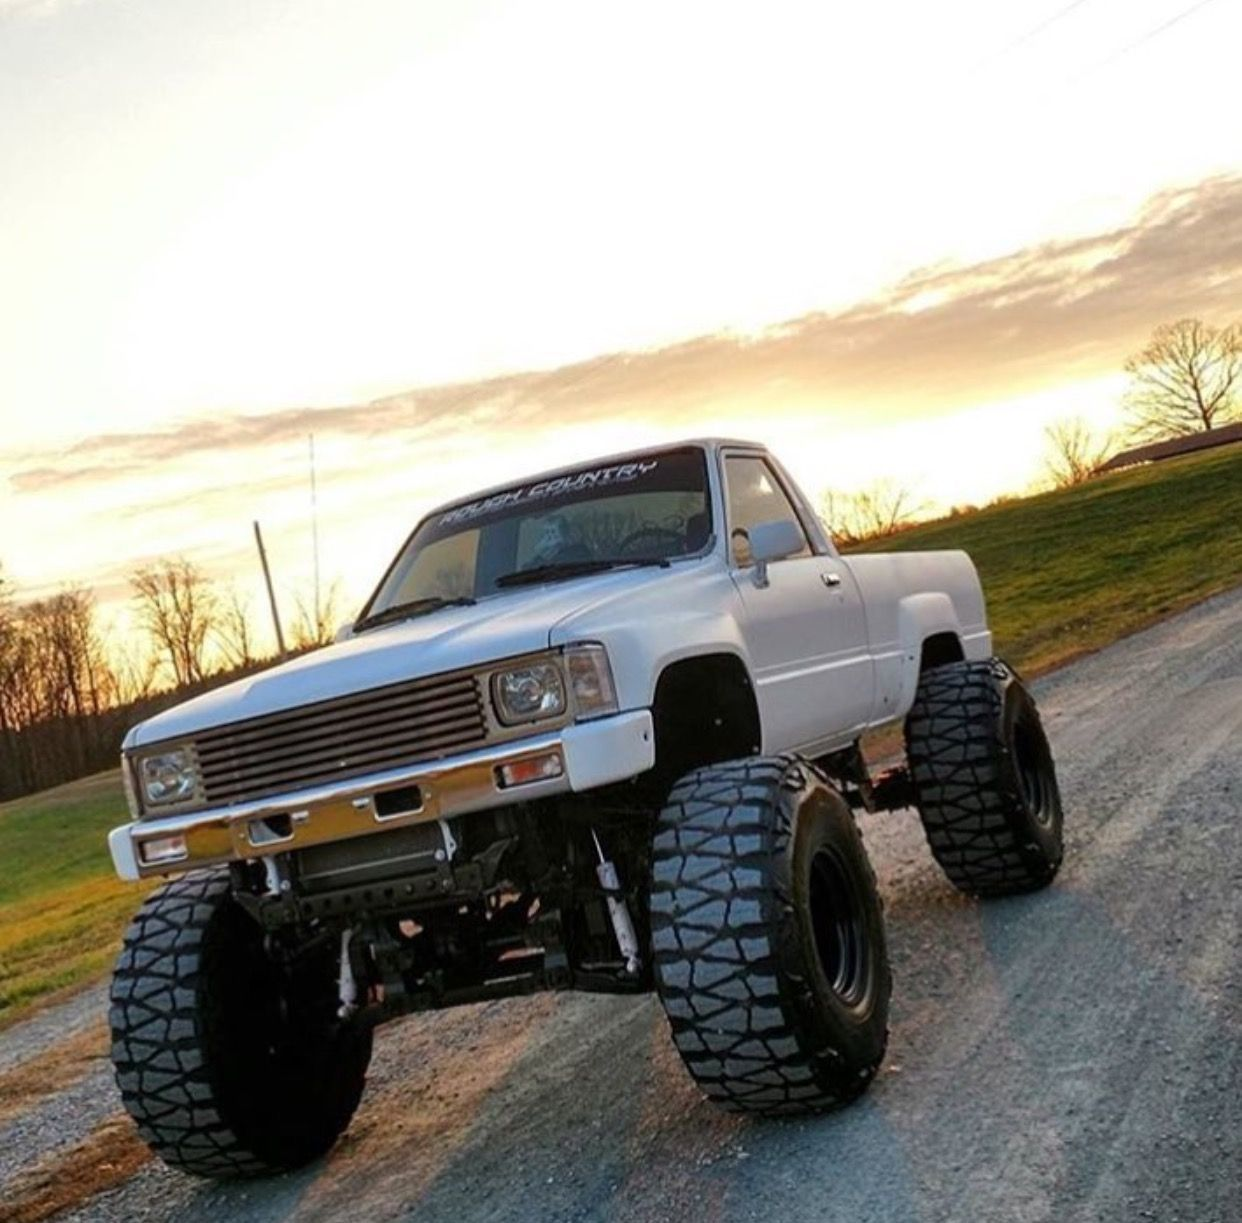 Truck Toyota: Trucks And Offroaders